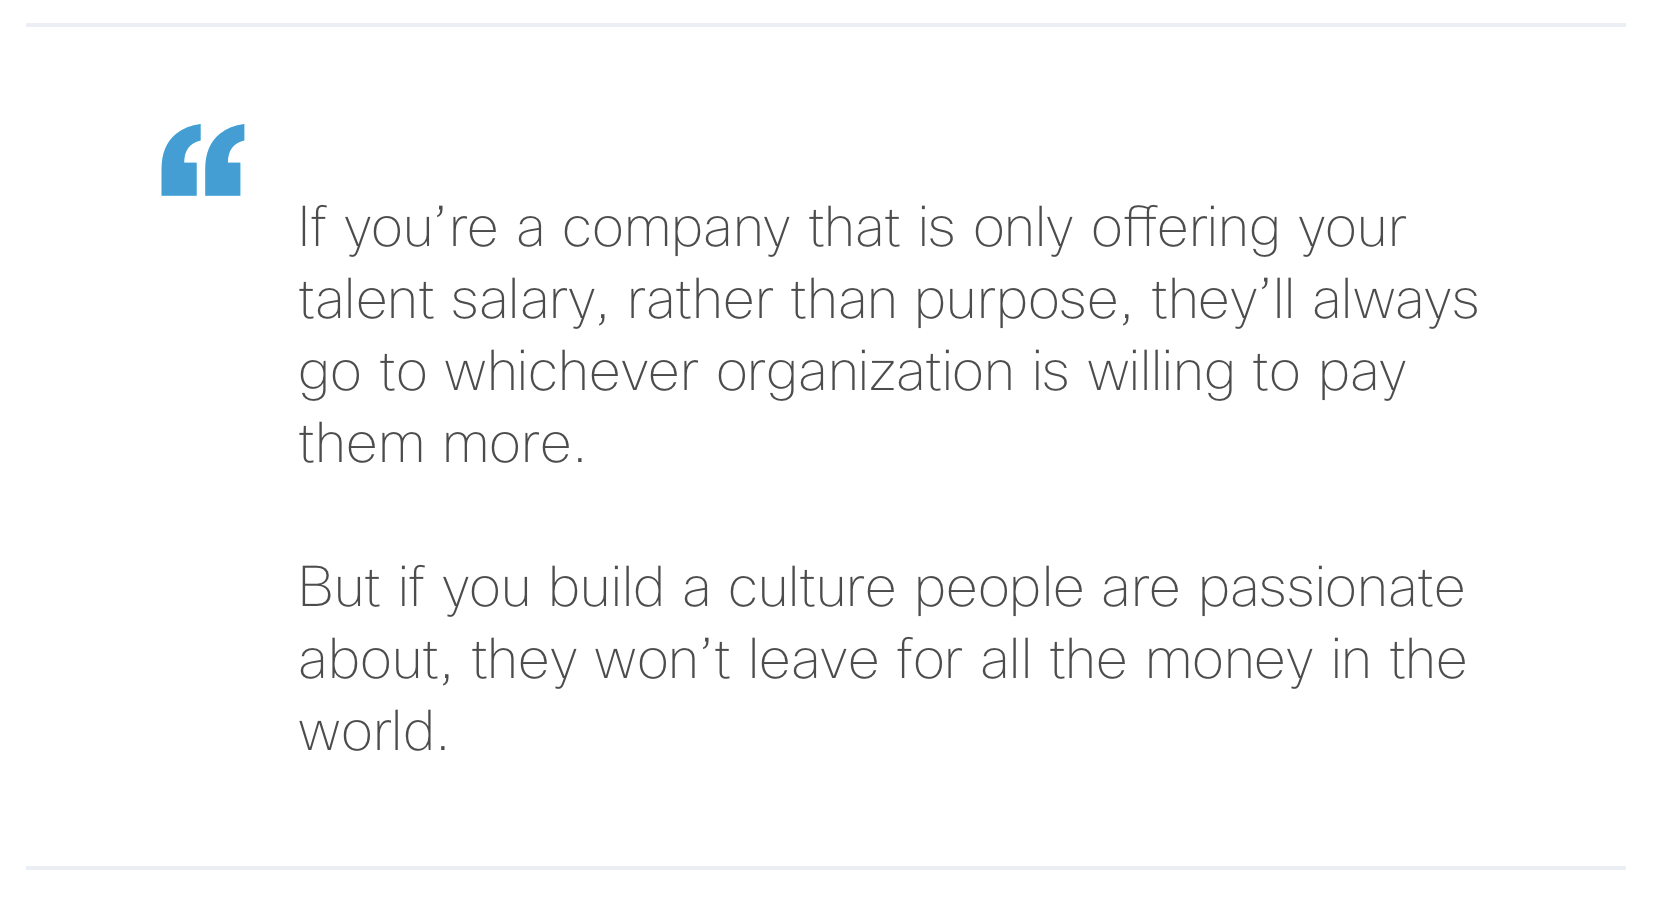 """""""If you're a company that is only offering your talent salary, rather than purpose, they'll always go to whichever organization is willing to pay them more. But if you build a culture people are passionate about, they won't leave for all the money in the world."""""""